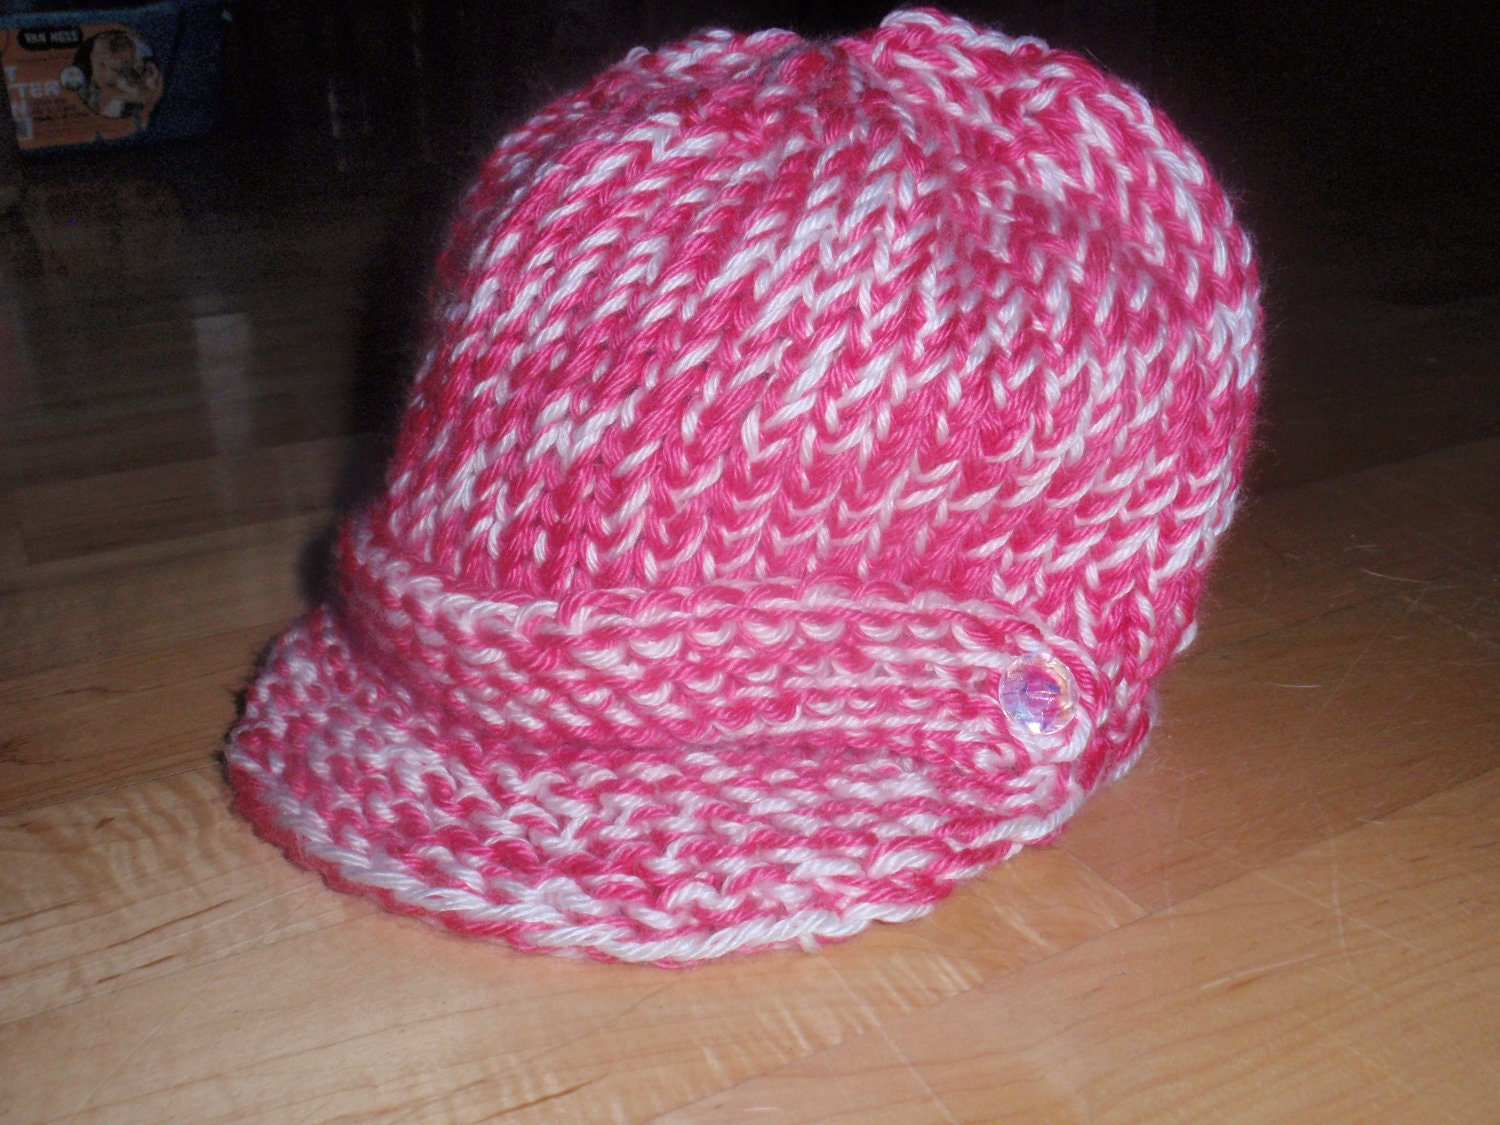 Loom Knit Hat Patterns Free : Pattern for Loom Knit Messenger/Newsboy Hat by Cre8tiveCorner